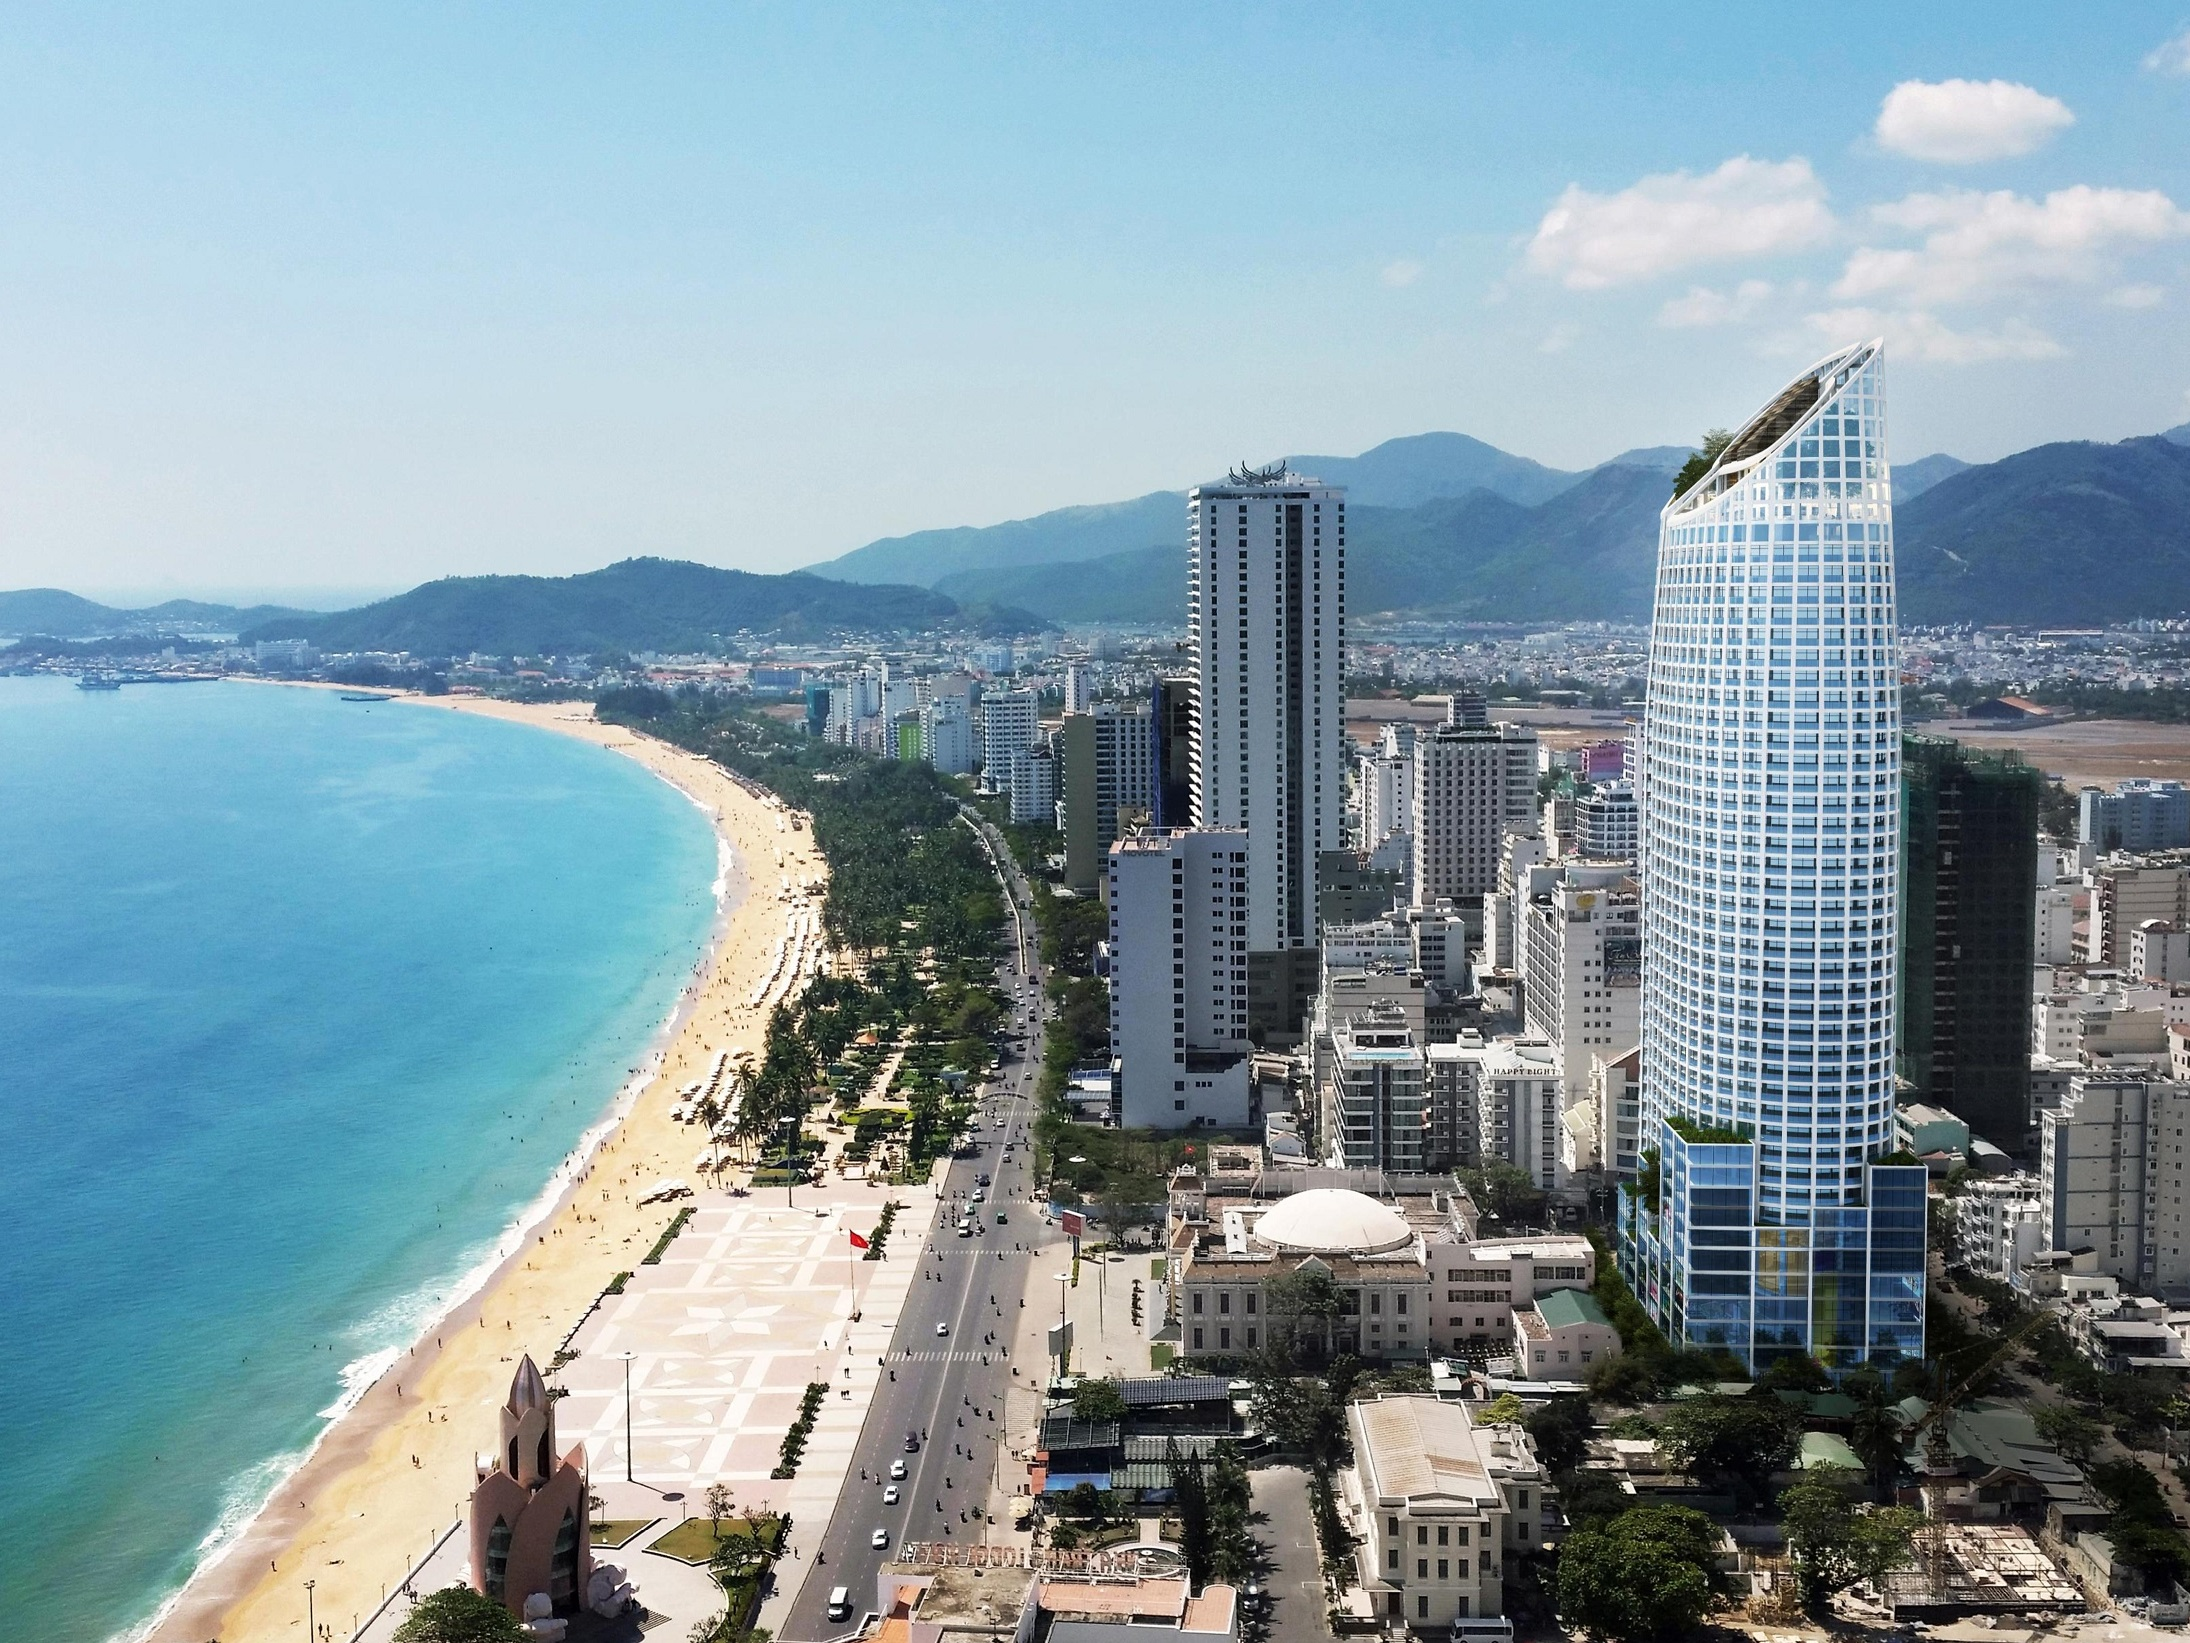 the h hotel central square condotel nha trang